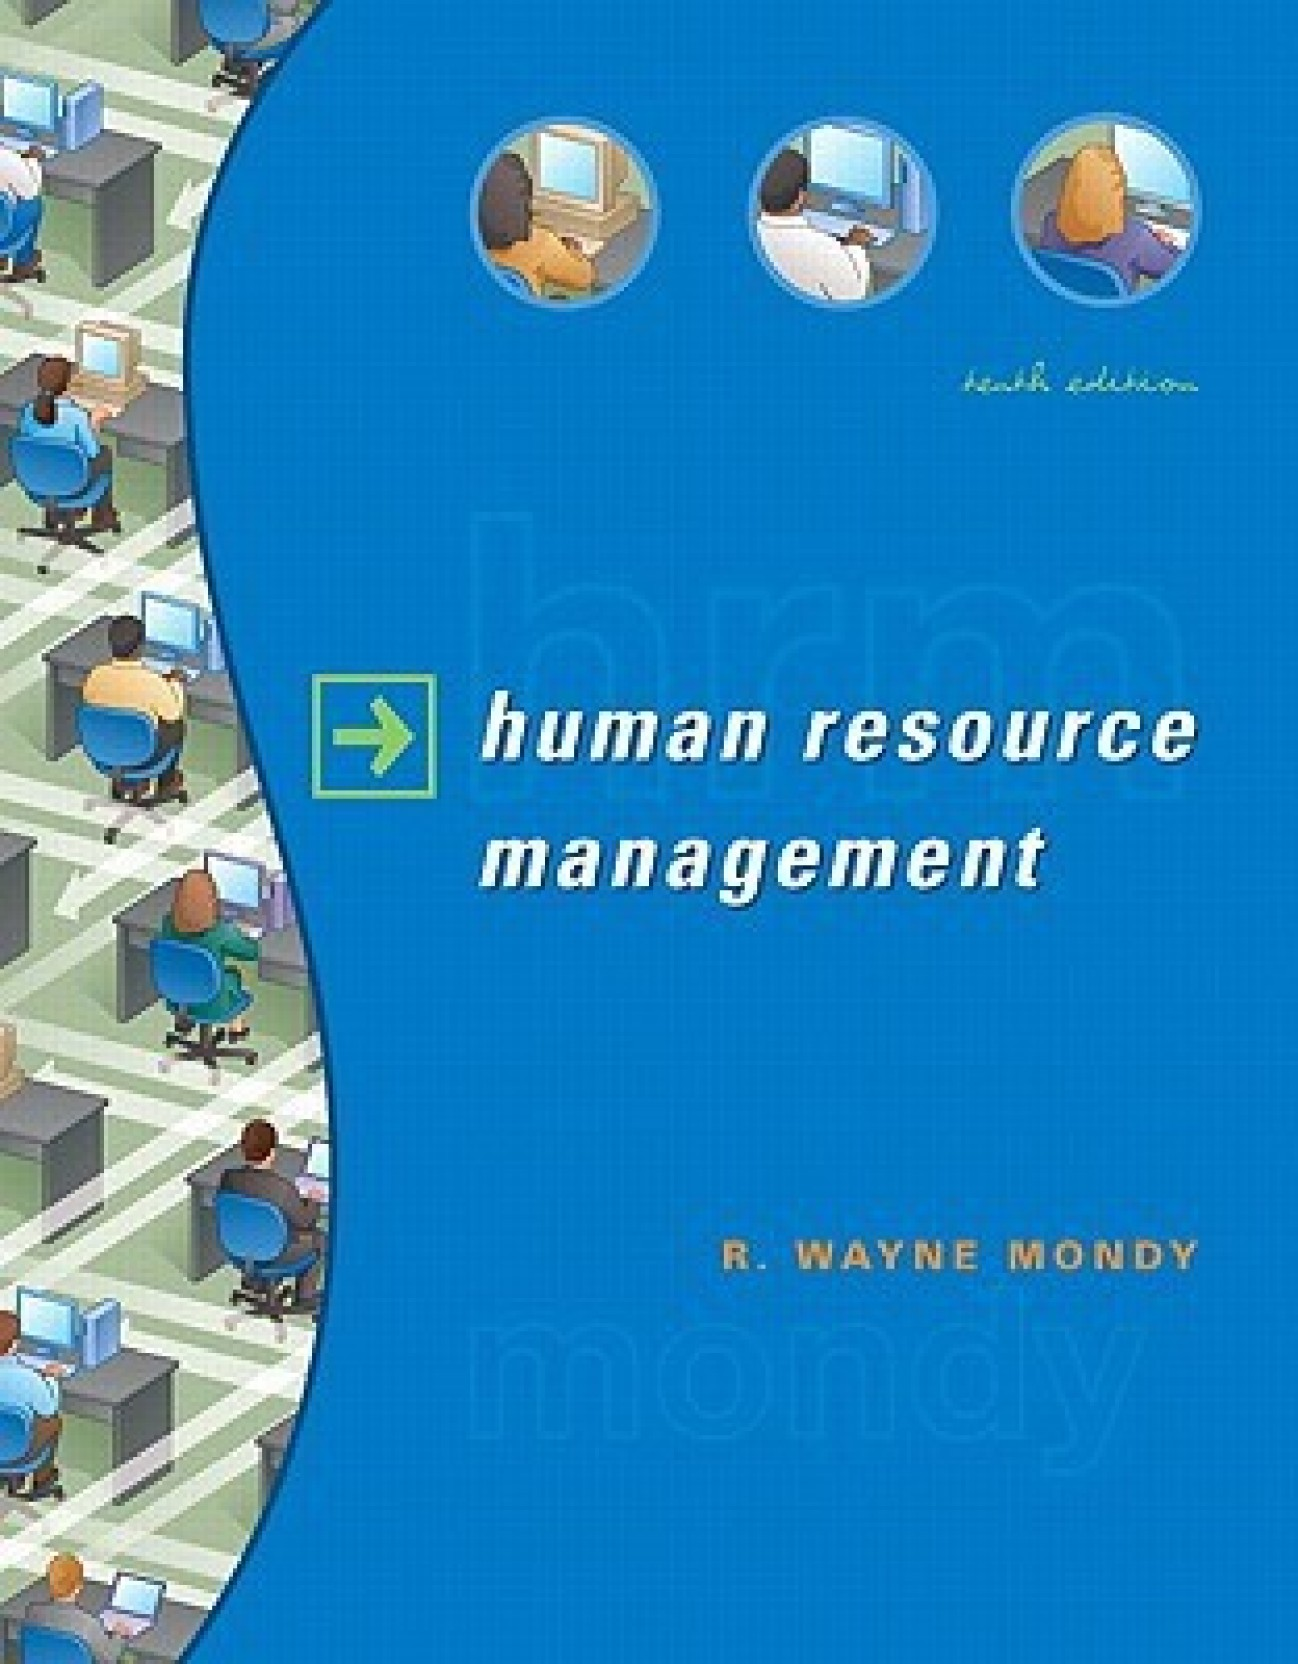 human resource management study guide